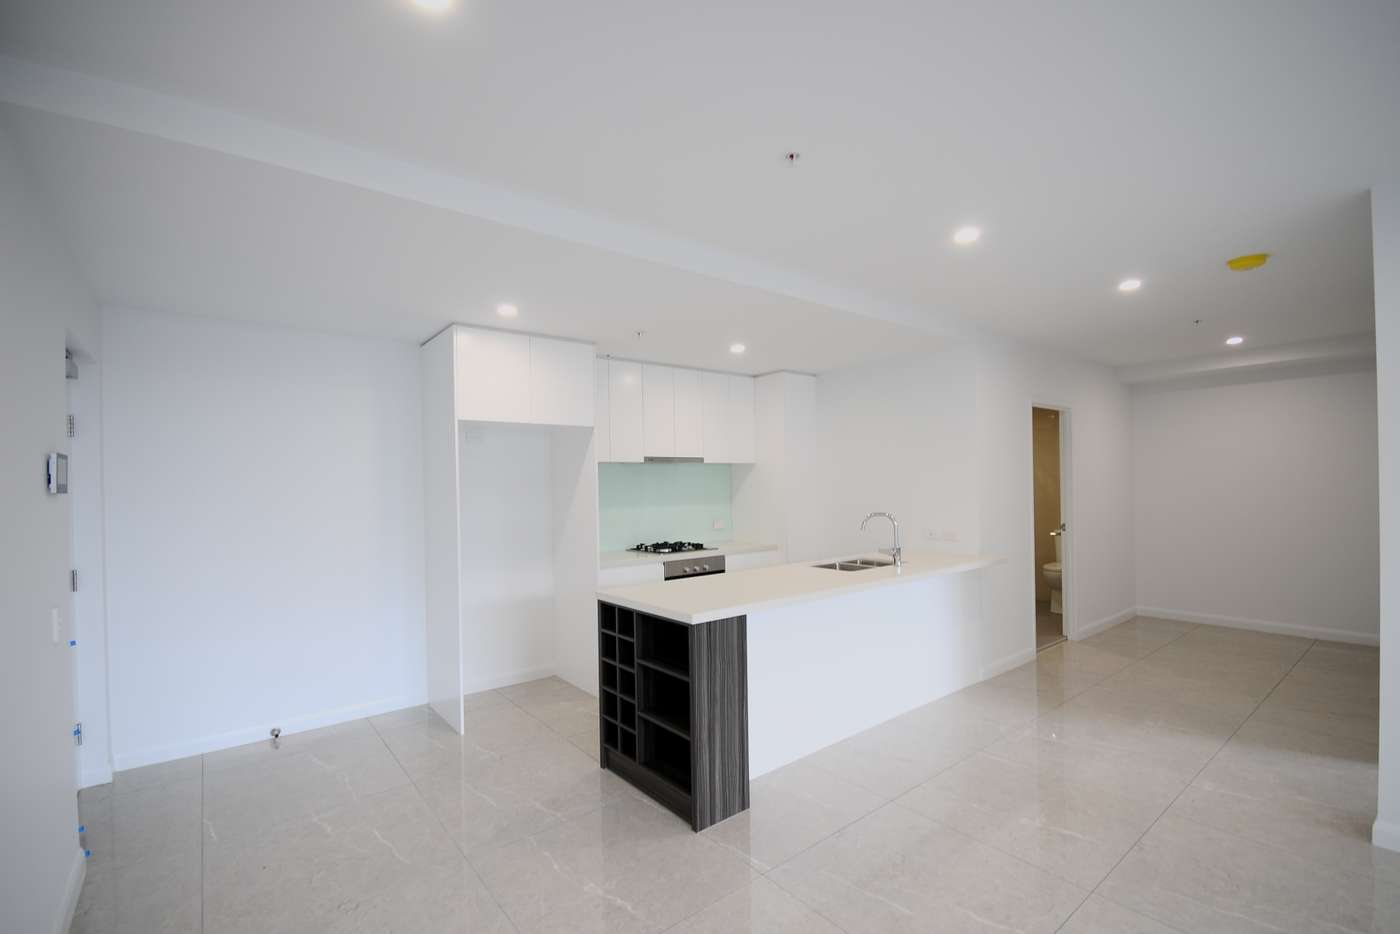 Sixth view of Homely apartment listing, 213/181 Clarence Rd, Indooroopilly QLD 4068